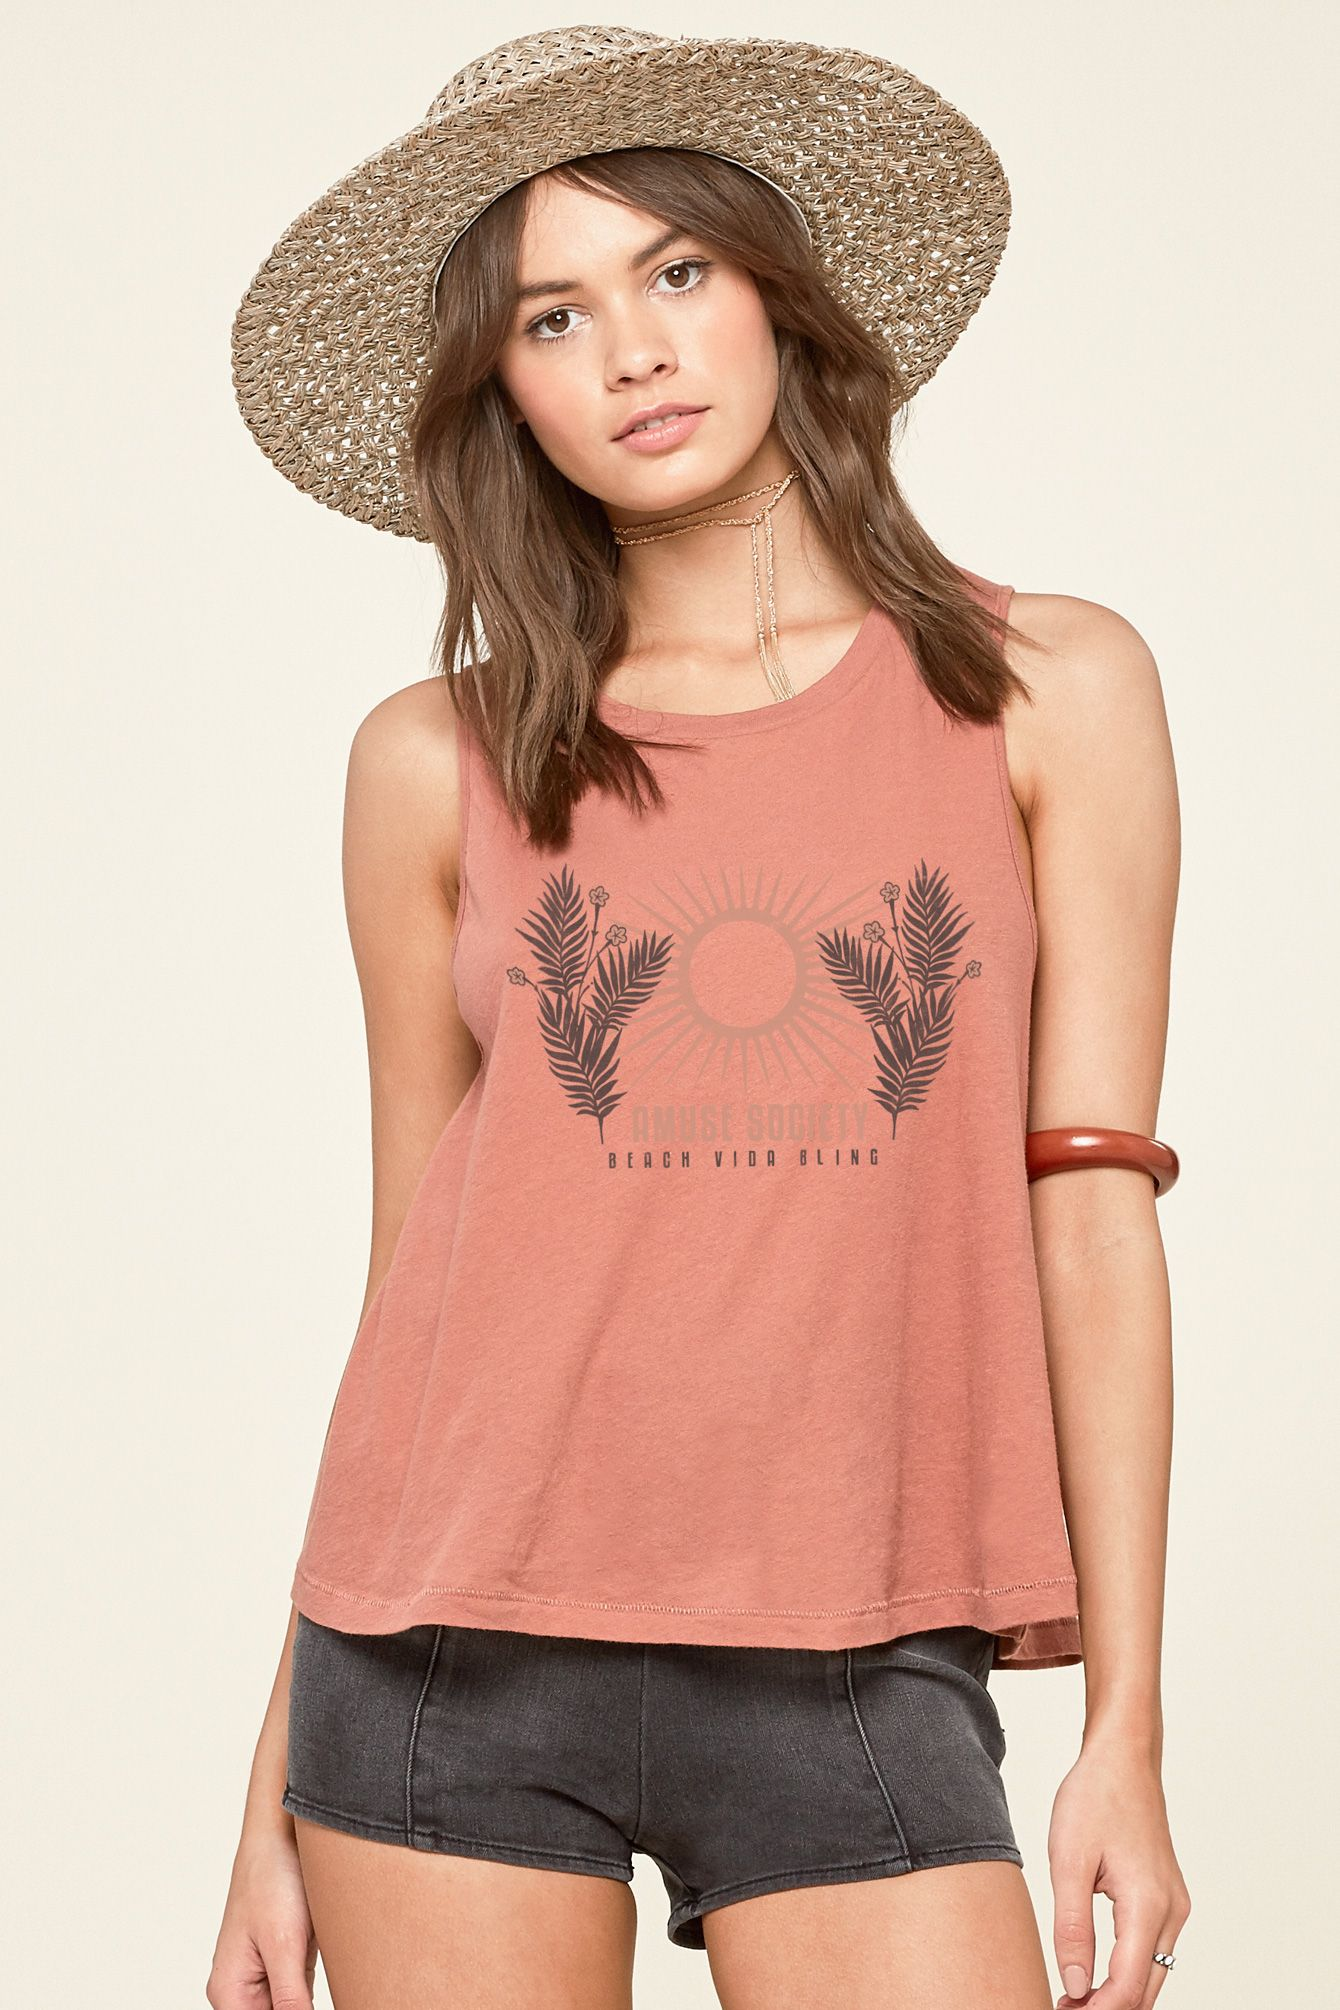 The Palm Rays Tank is a loose knit tank with rib knit detail and screen print at chest.